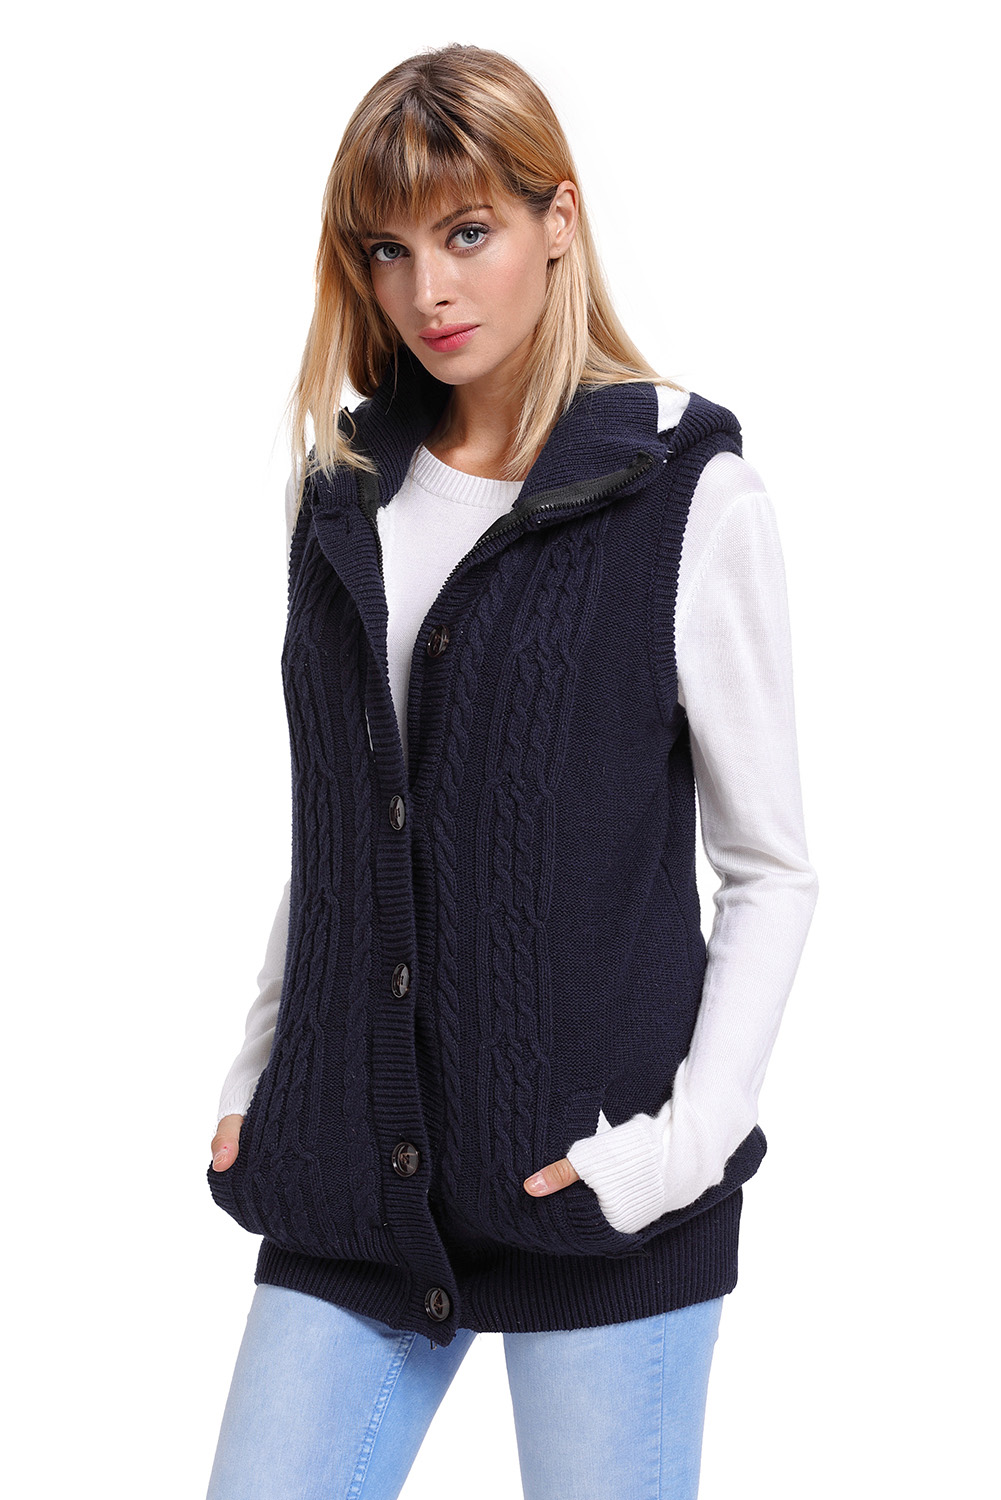 Details about Cable knit hooded sweater vest womens brief autumn winter solid sleeveless hat